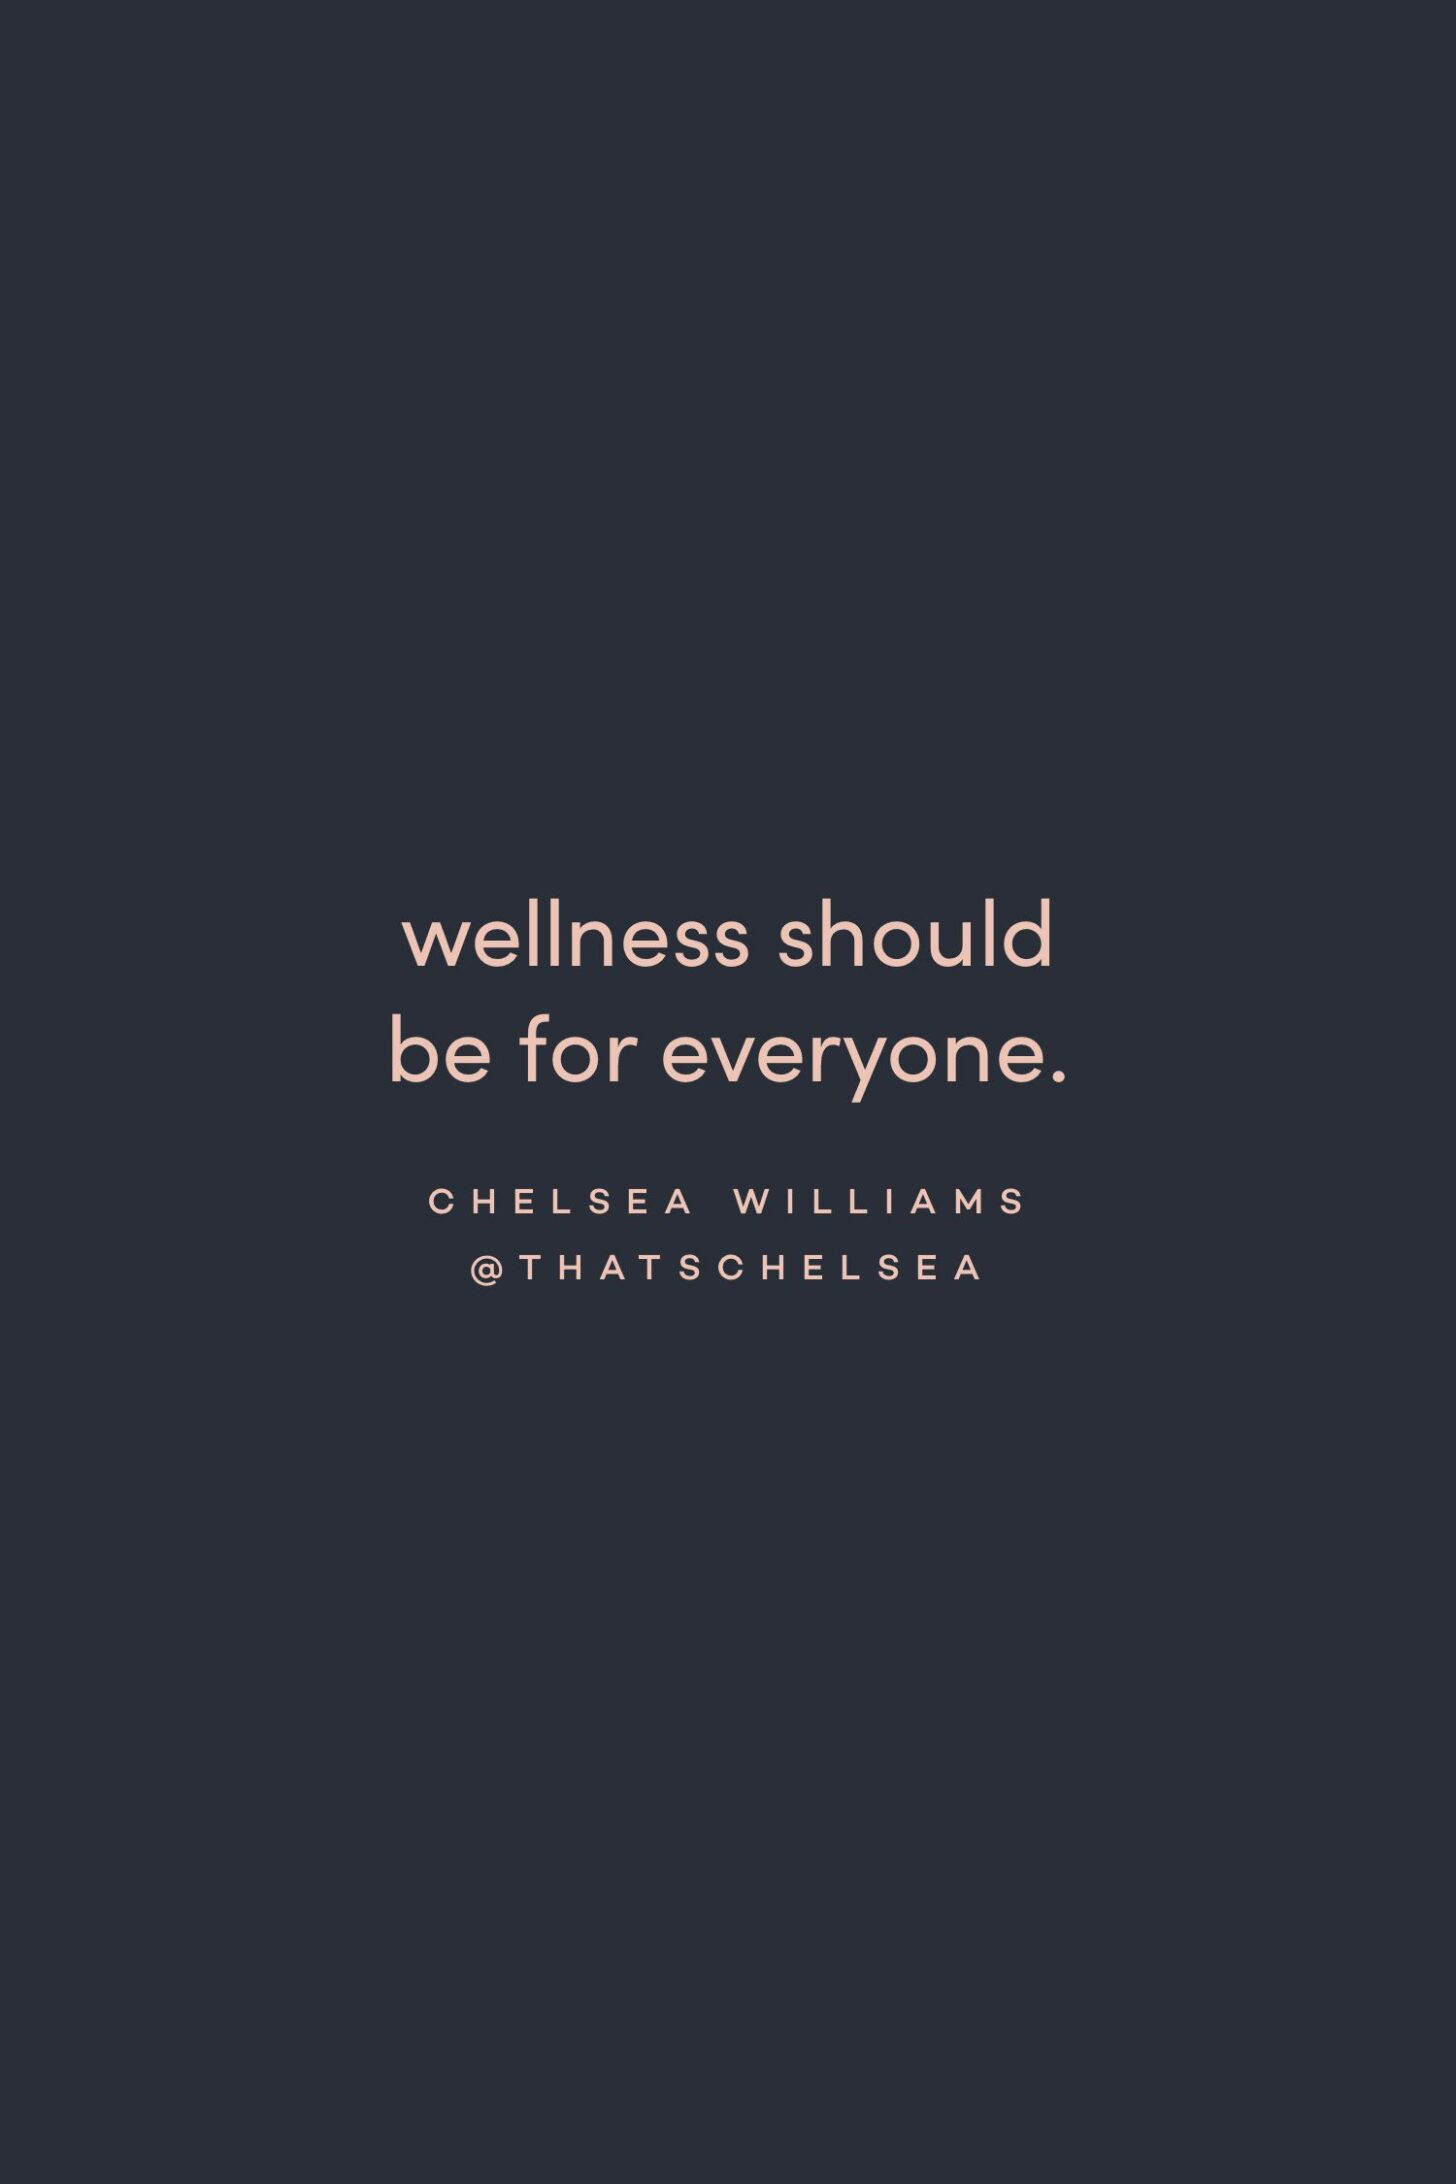 Quote on wellness for everyone by Chelsea Williams on the Feel Good Effect Podcast #realfoodwholelife #feelgoodeffectpodcast #inspirationalquote #positivityquote #motivationalquote #wellnessquote #equityquote #selfcarequote